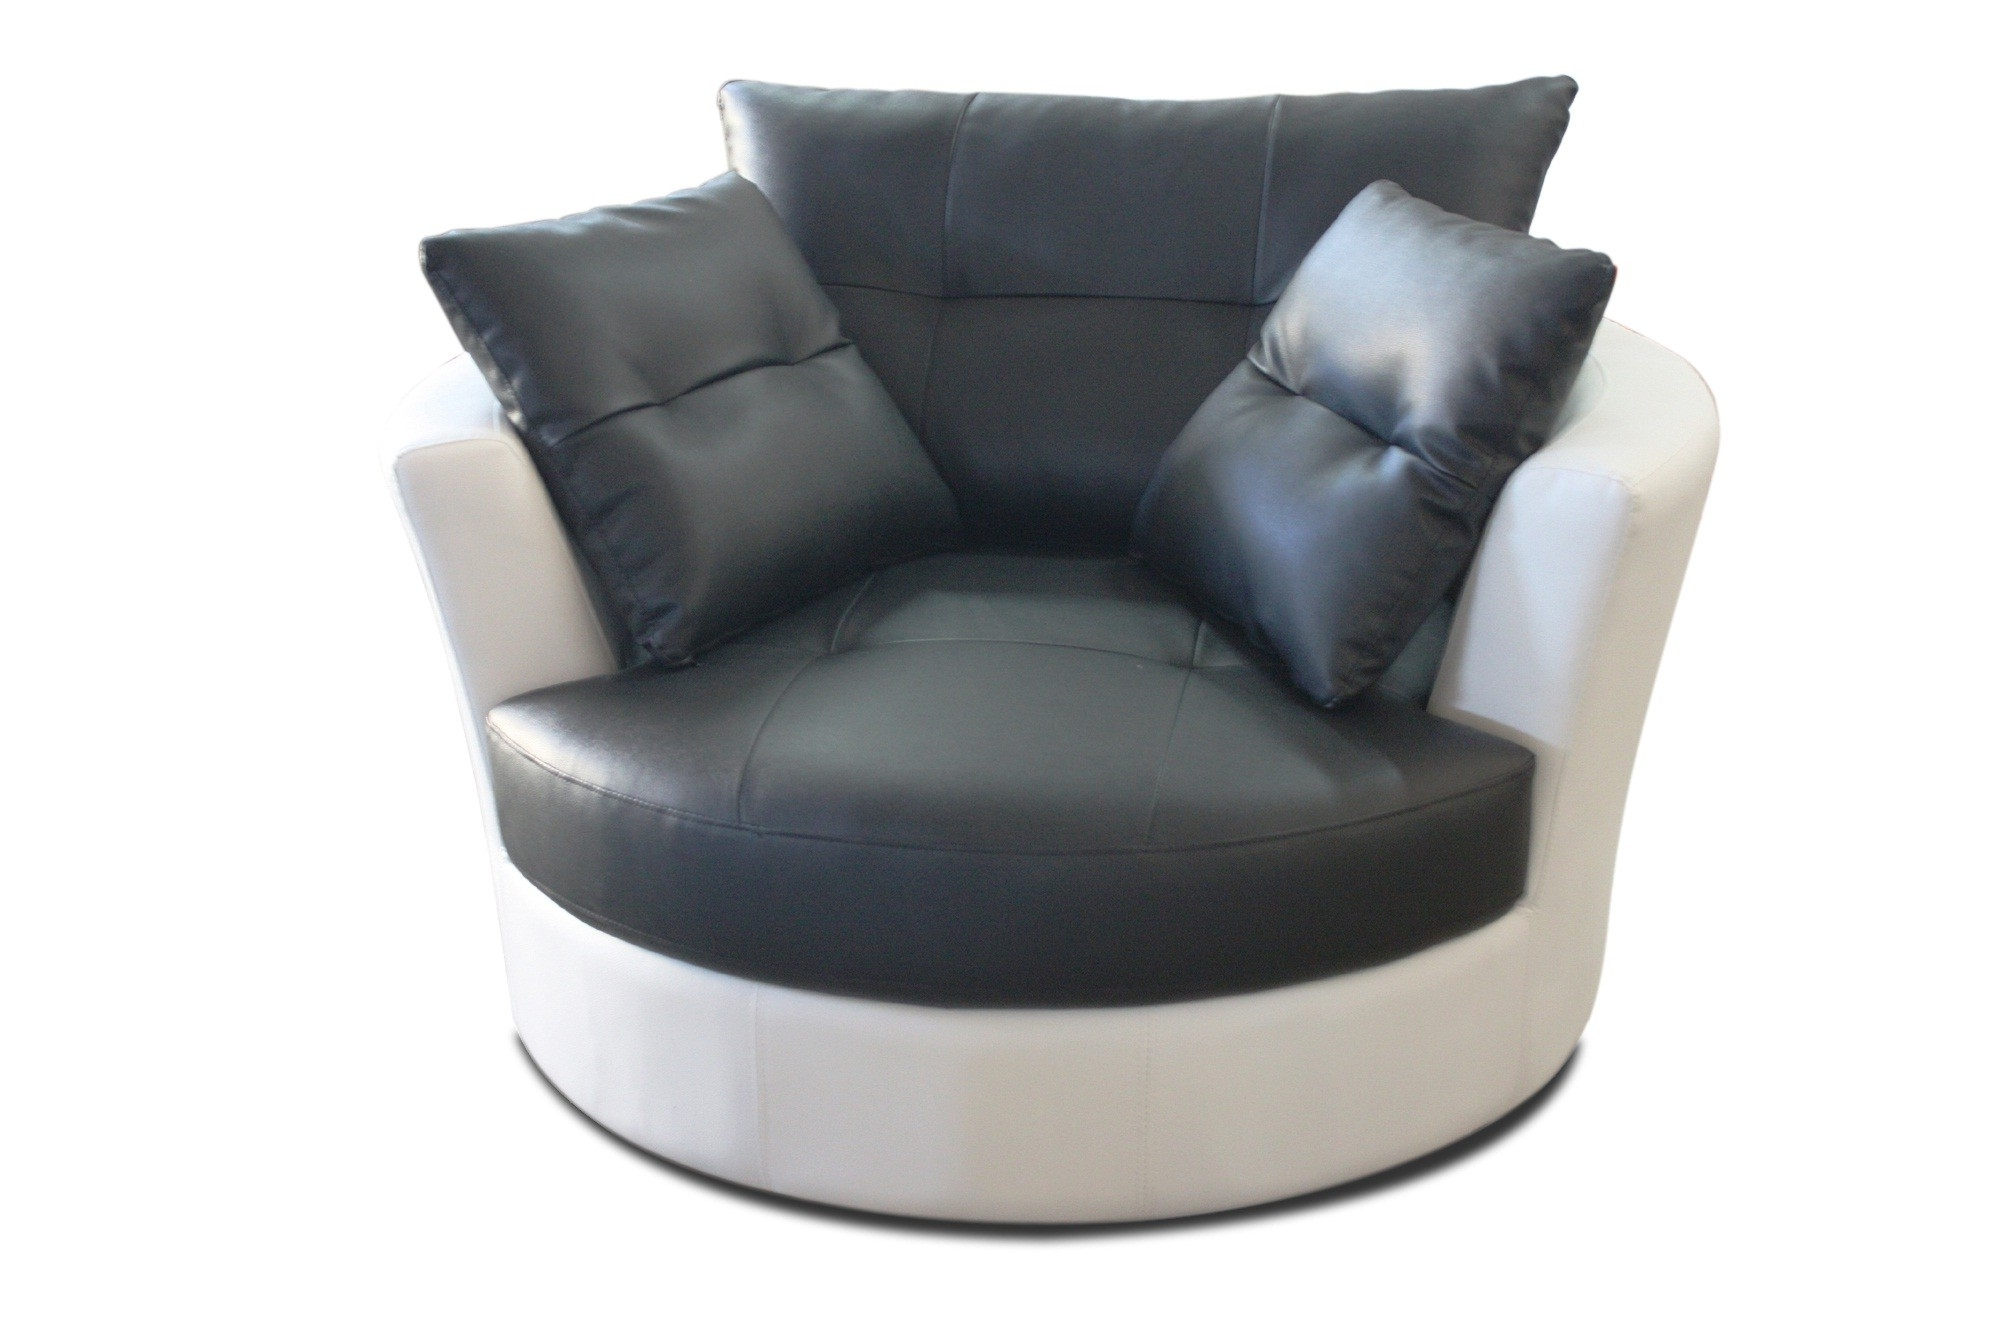 Newest Round Swivel Sofa Chairs Within Fresh Swivel Sofa Chair 55 For Sofas And Couches Ideas With Swivel (View 14 of 20)